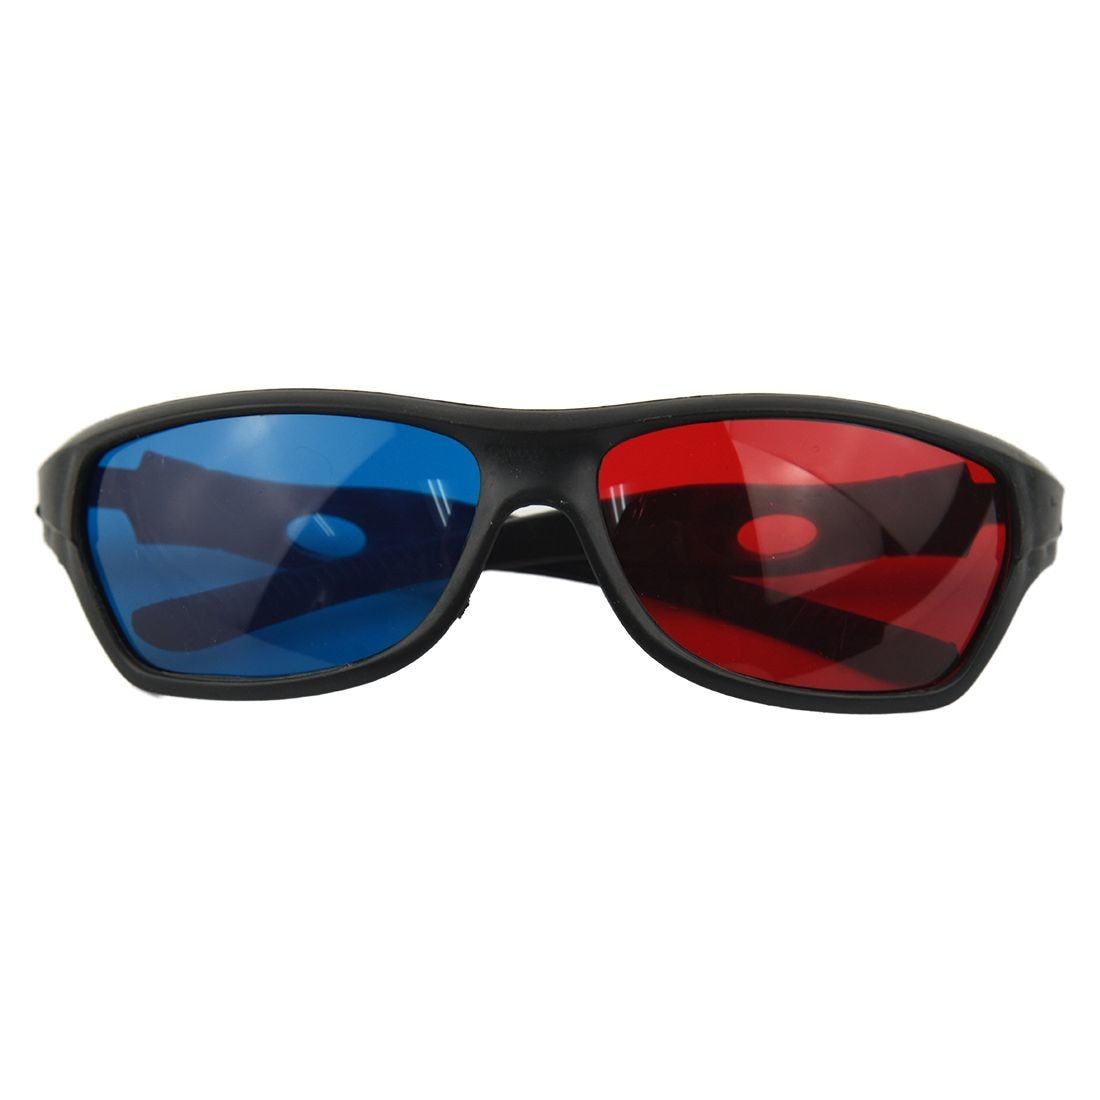 HOT-Fasdga 3D Plastic glasses/VR glasses Red-blue Anaglyph Simple style 3D Glasses 3D movie game DVD vision(Extra Upgrade Style)